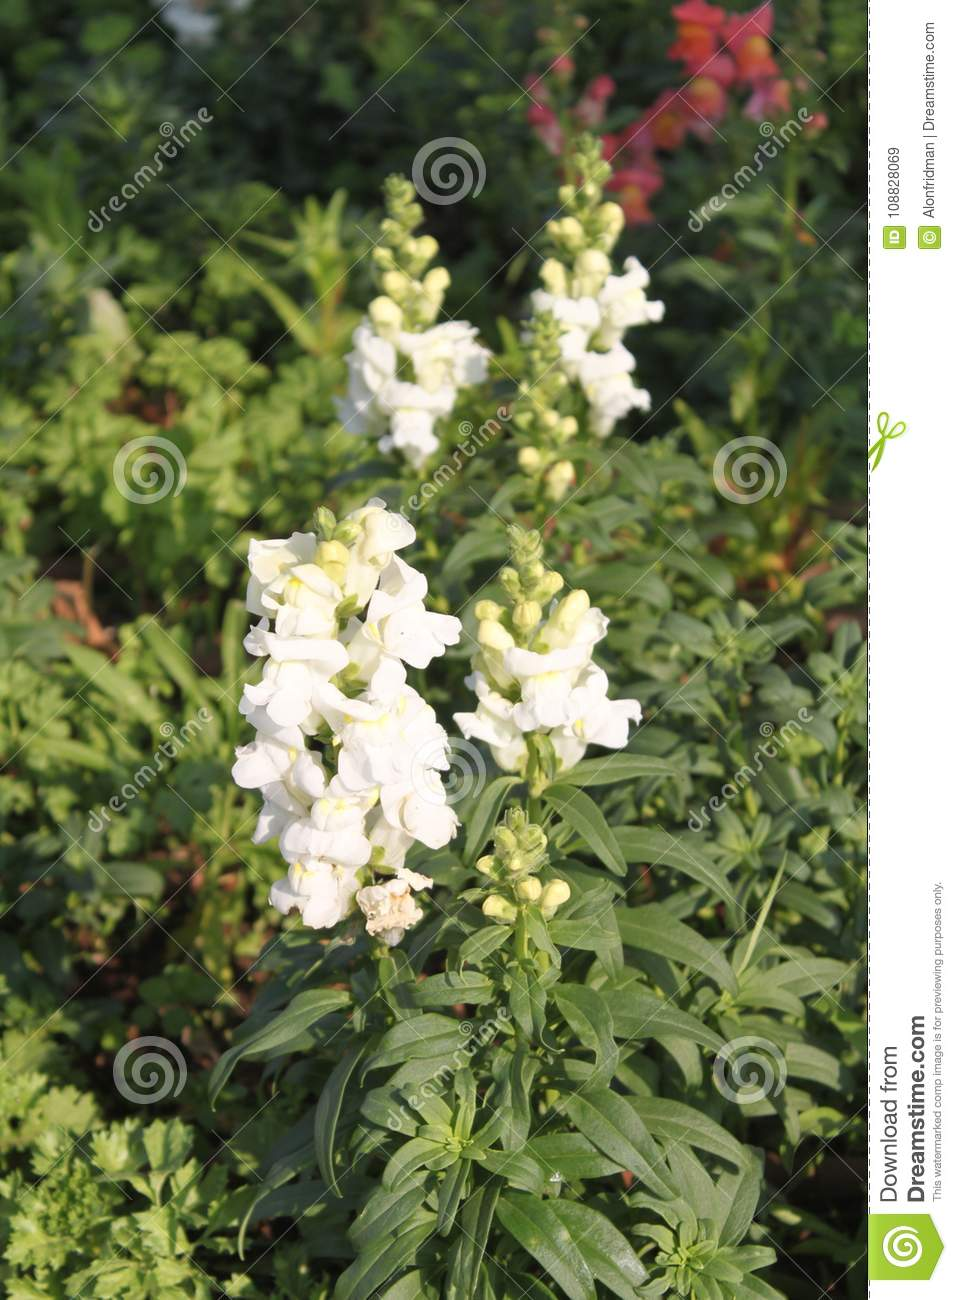 White snapdragons flowers stock image image of blooming 108828069 download white snapdragons flowers stock image image of blooming 108828069 mightylinksfo